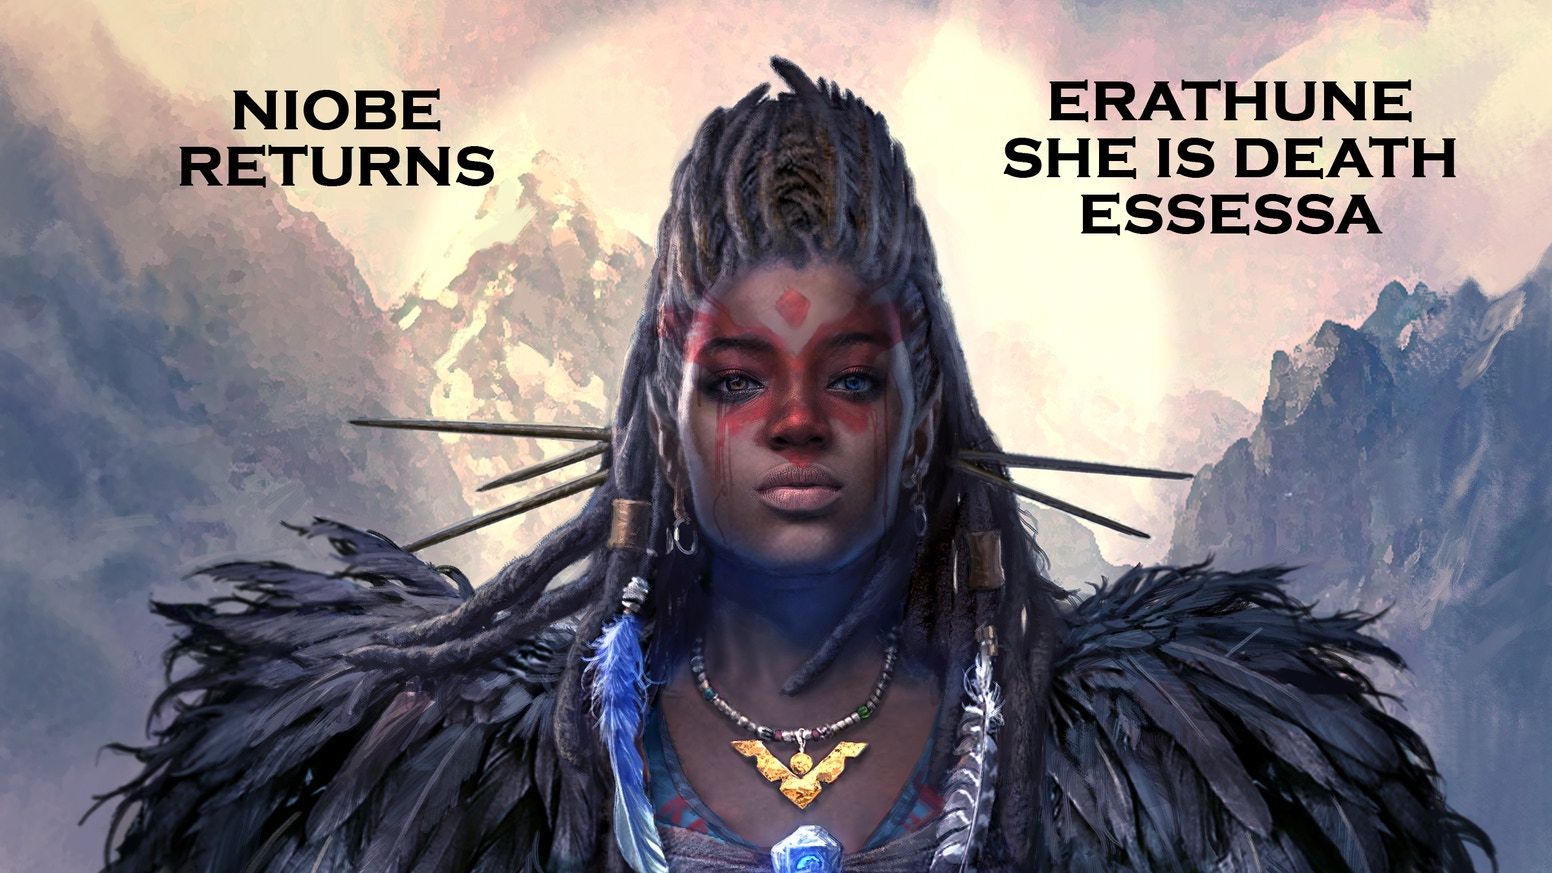 Niobe returns to reclaim her throne in 3 tales. Get the Erathune Hardcover, She is Death #1 & #2, and the vampire epic, Essessa #1!